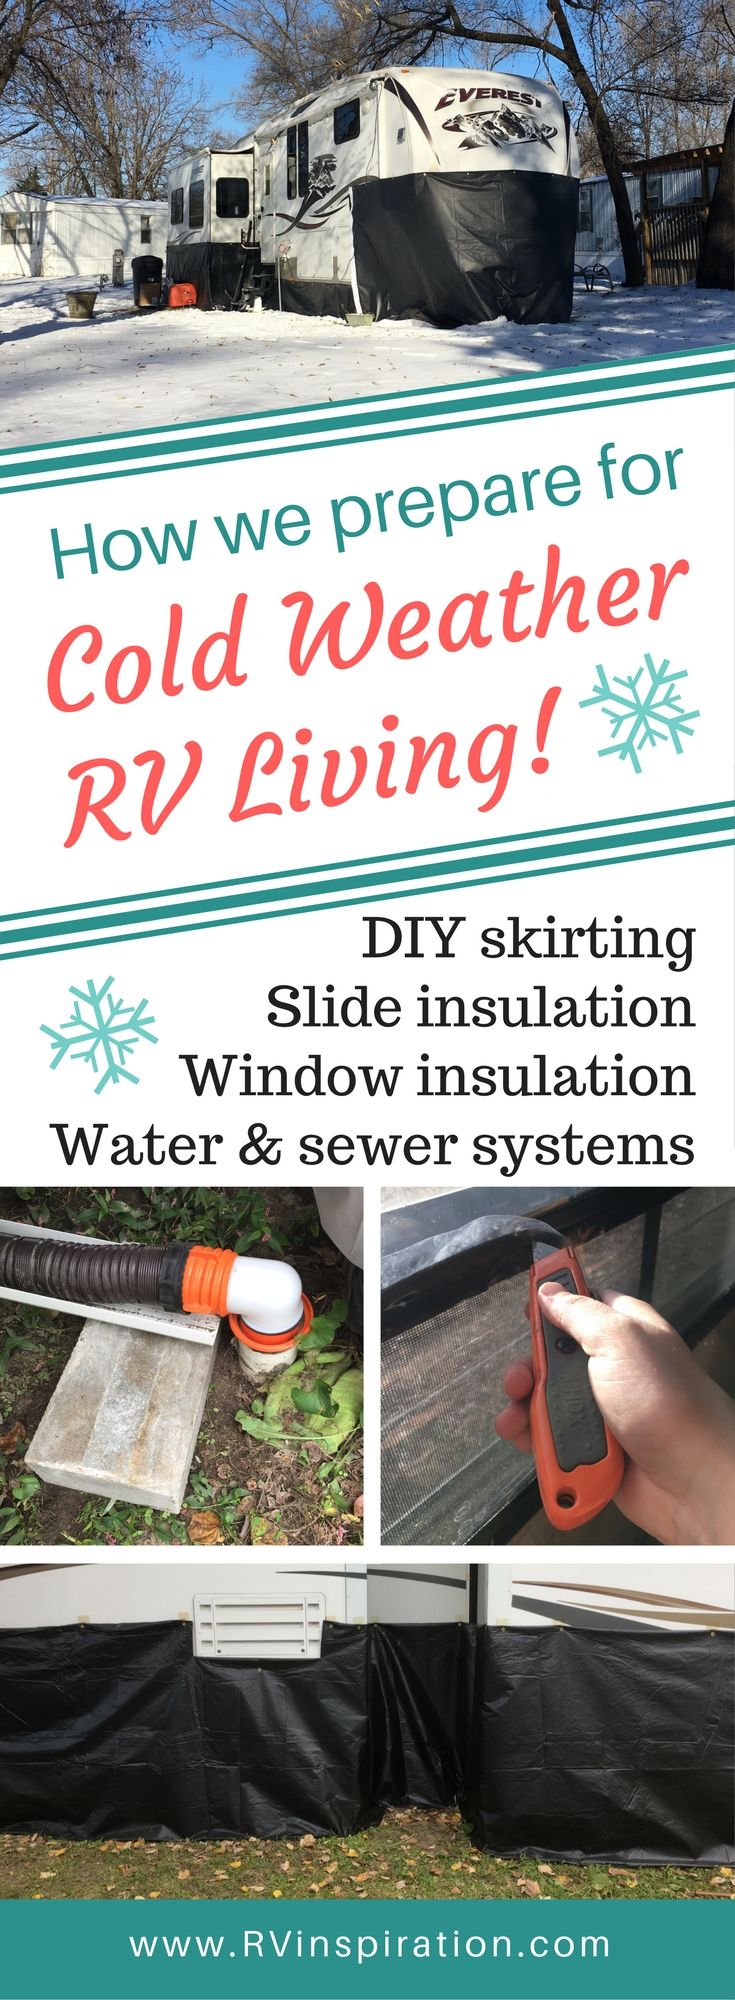 Strategies for Preparing for Cold Weather in the RV. Includes DIY skirting, window insulation, and water systems preventive maintenance.   North American RV Travel via RVInspiration.com